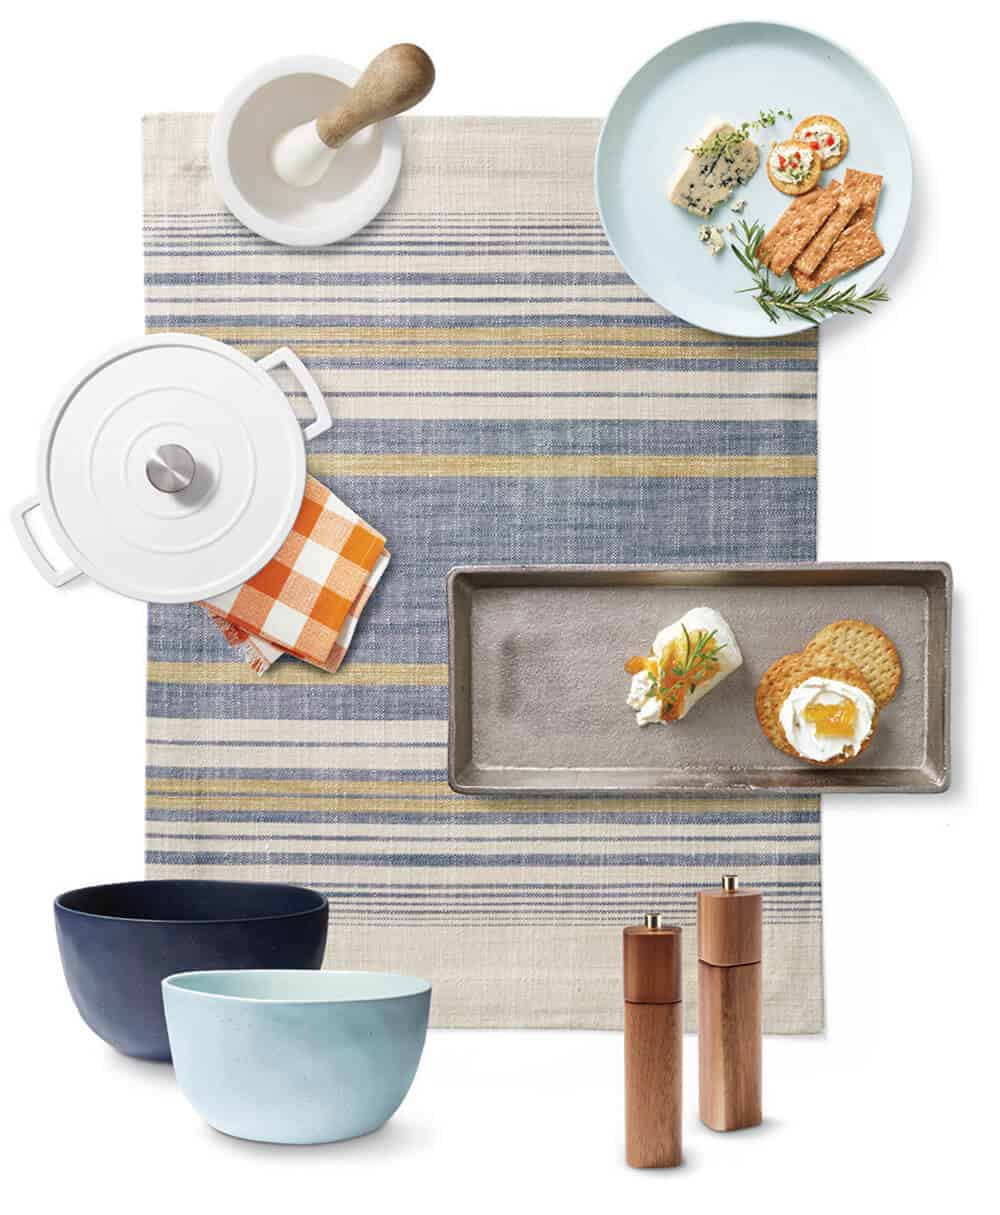 target-fall-style-catalogue-preview-emily-henderson-design-8